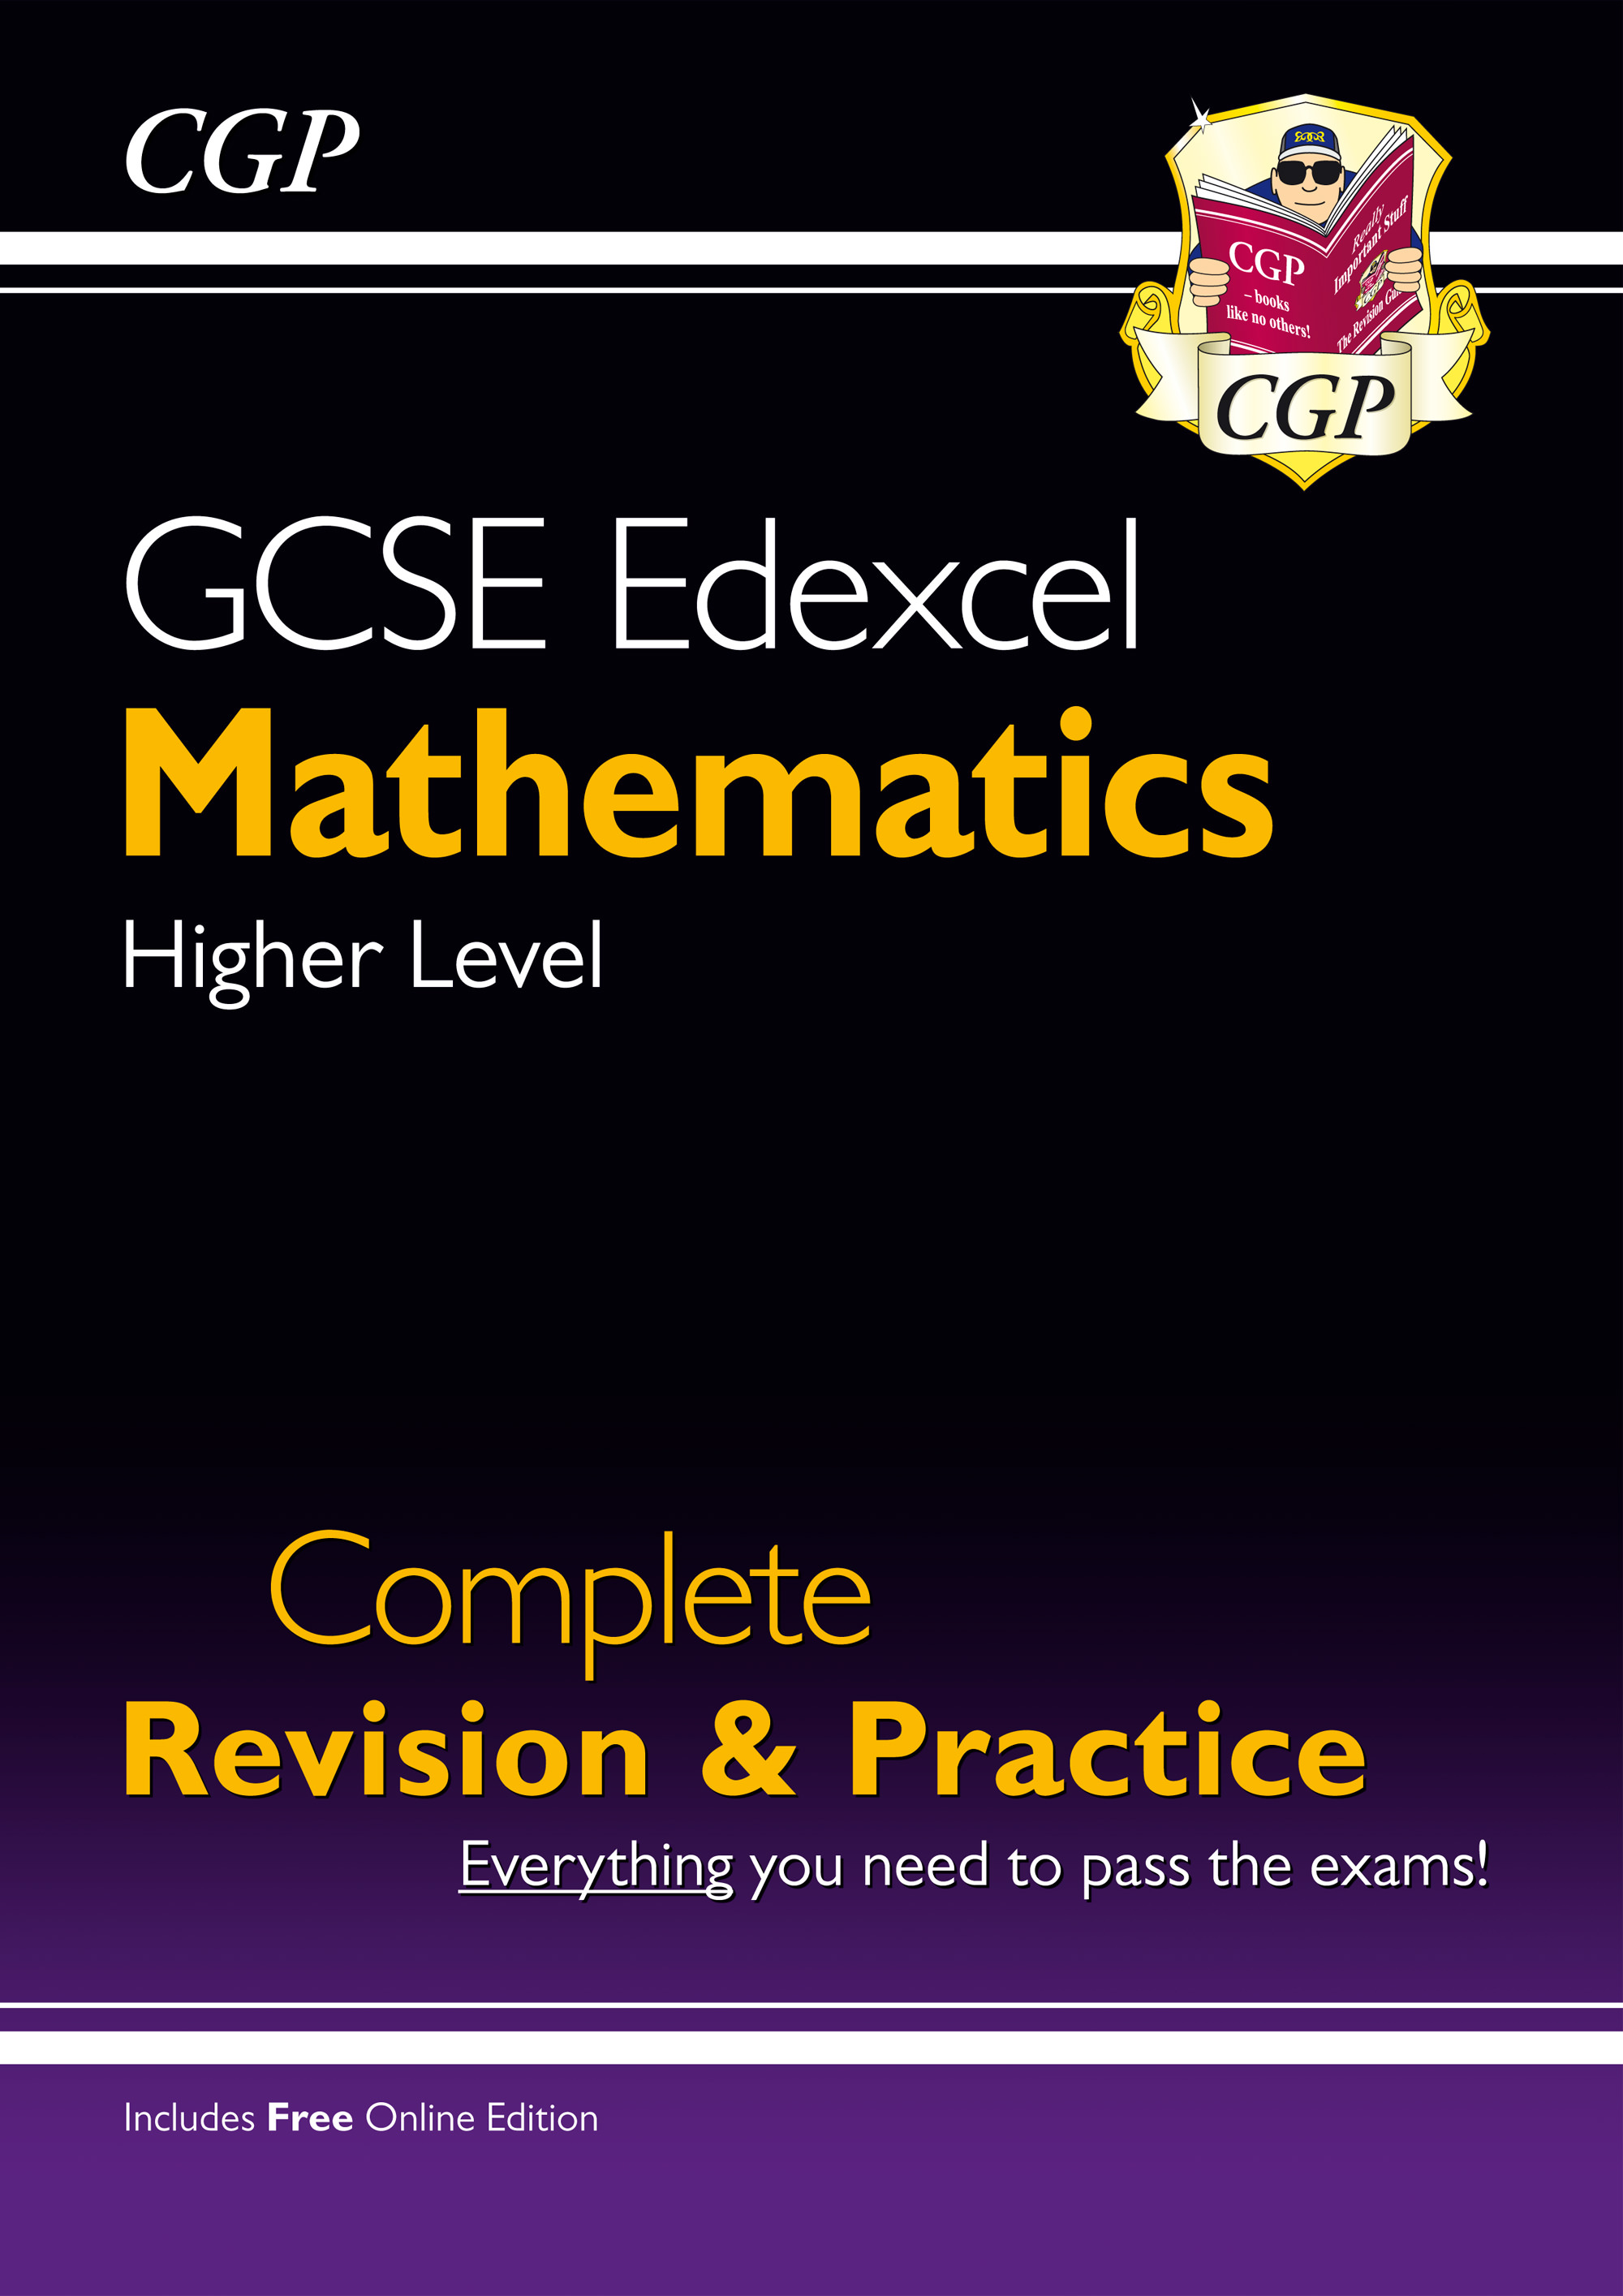 MXHS43 - GCSE Maths Edexcel Complete Revision & Practice: Higher - Grade 9-1 Course (with Online Edi